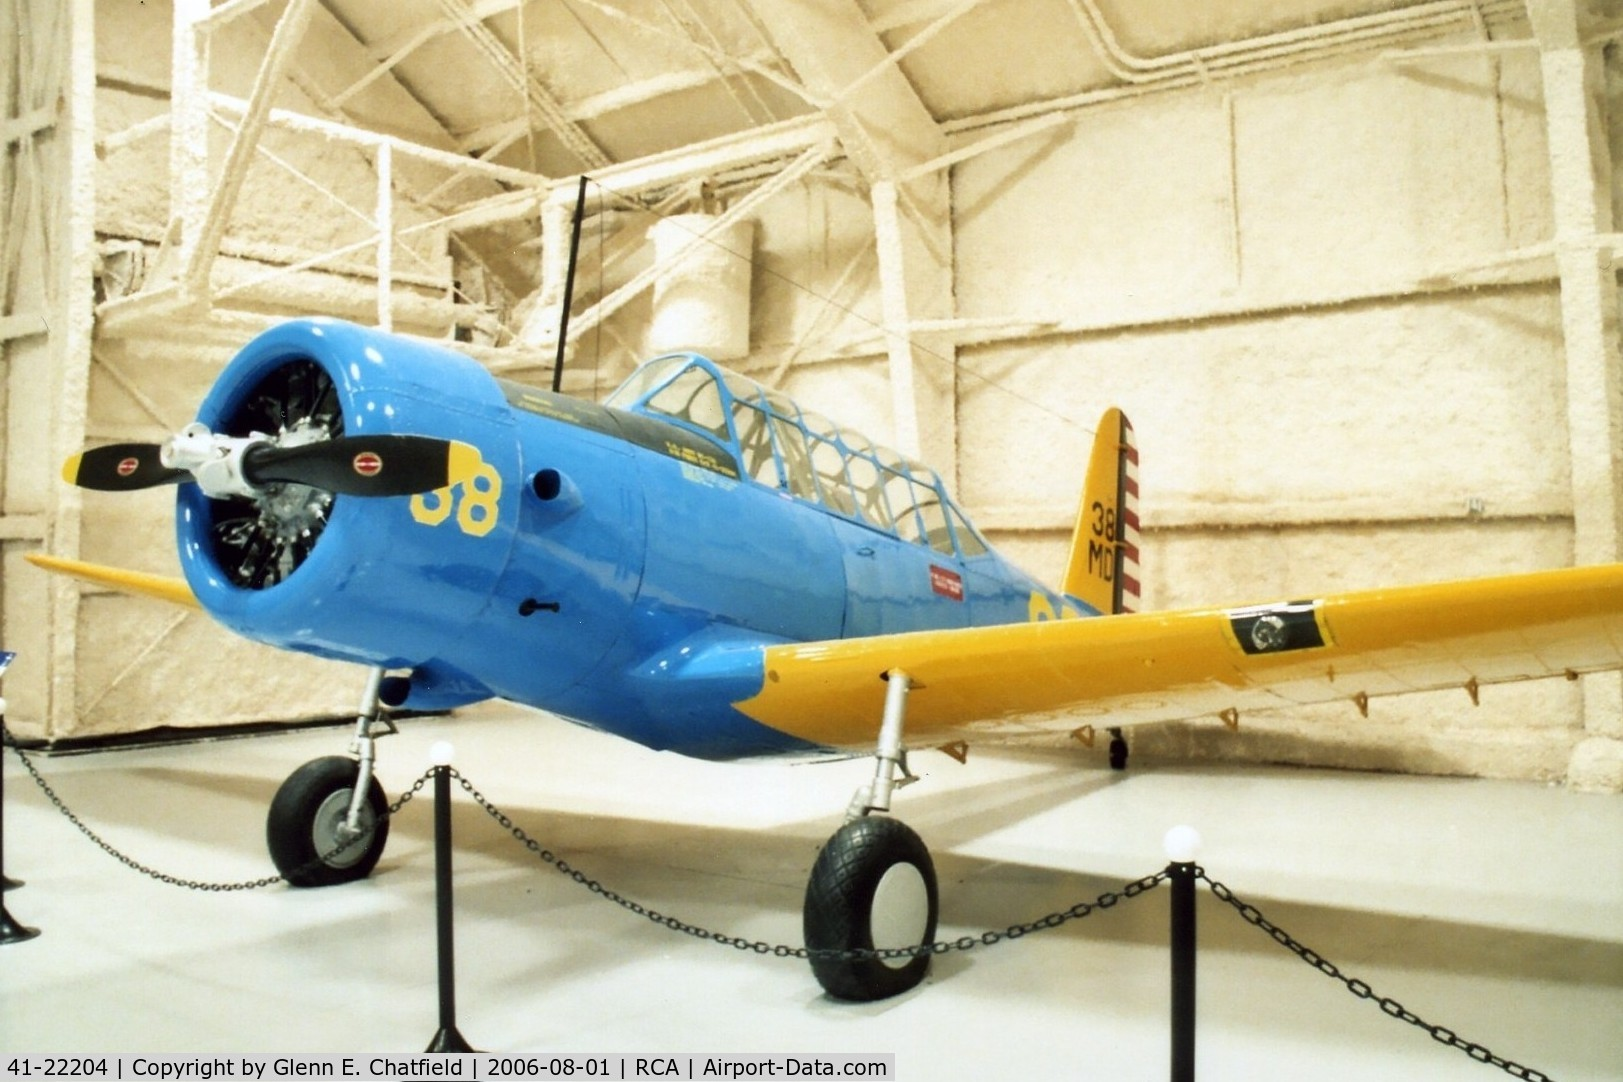 41-22204, 1941 Vultee BT-13A Valiant C/N 74-6124, BT-13A at the South Dakota Air & Space Museum